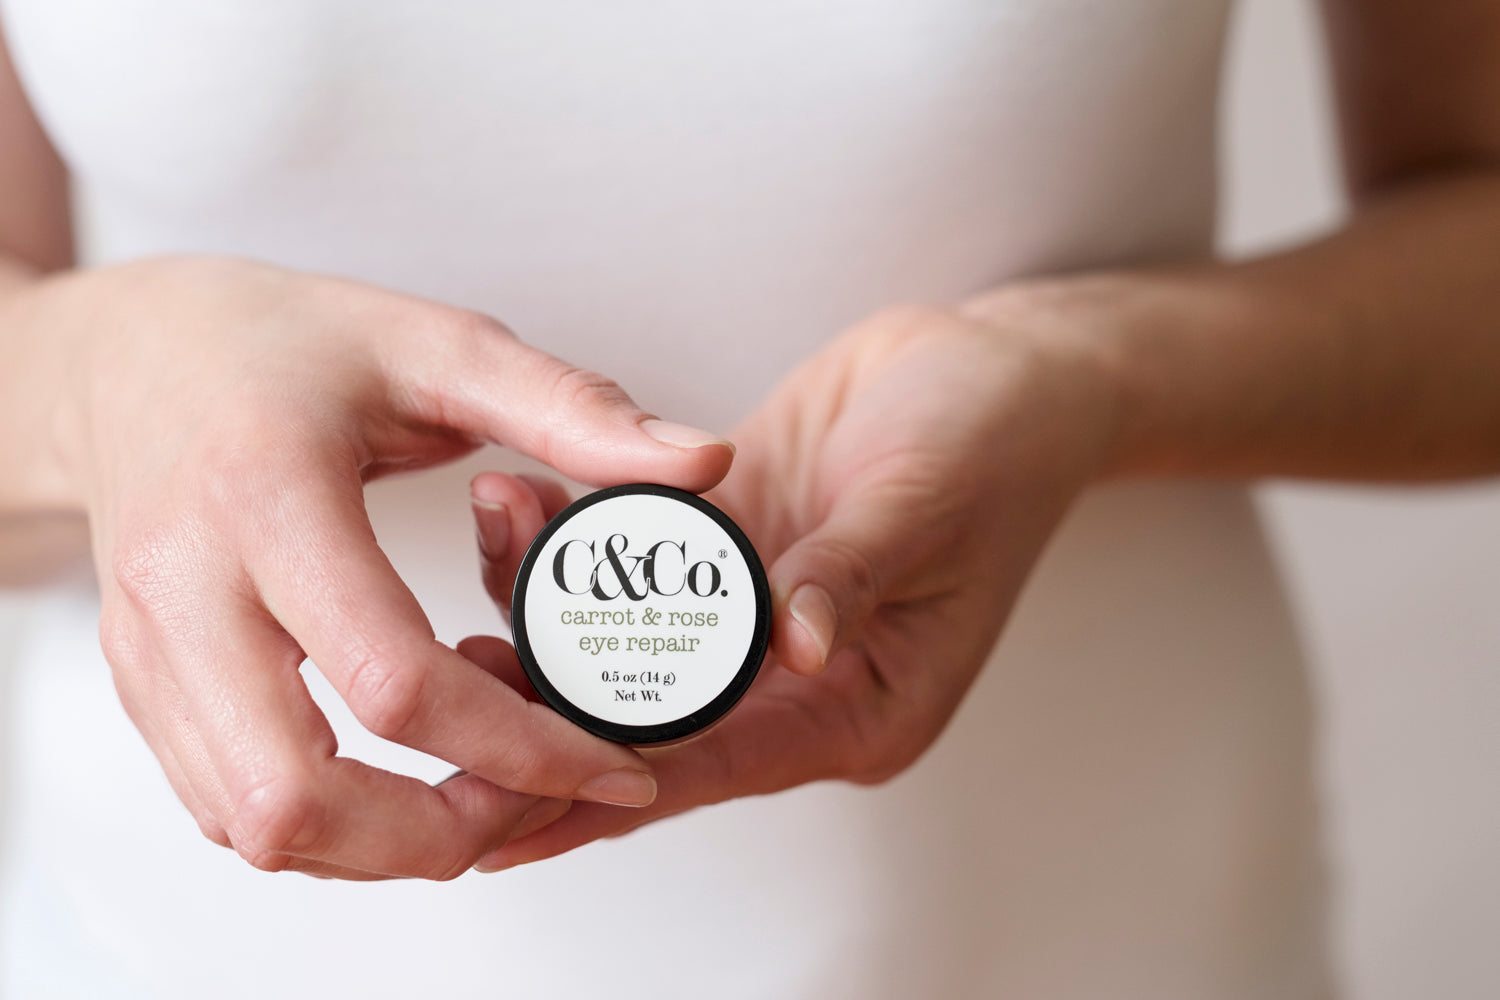 Carrot & Rose Eye Repair - C & Co.®